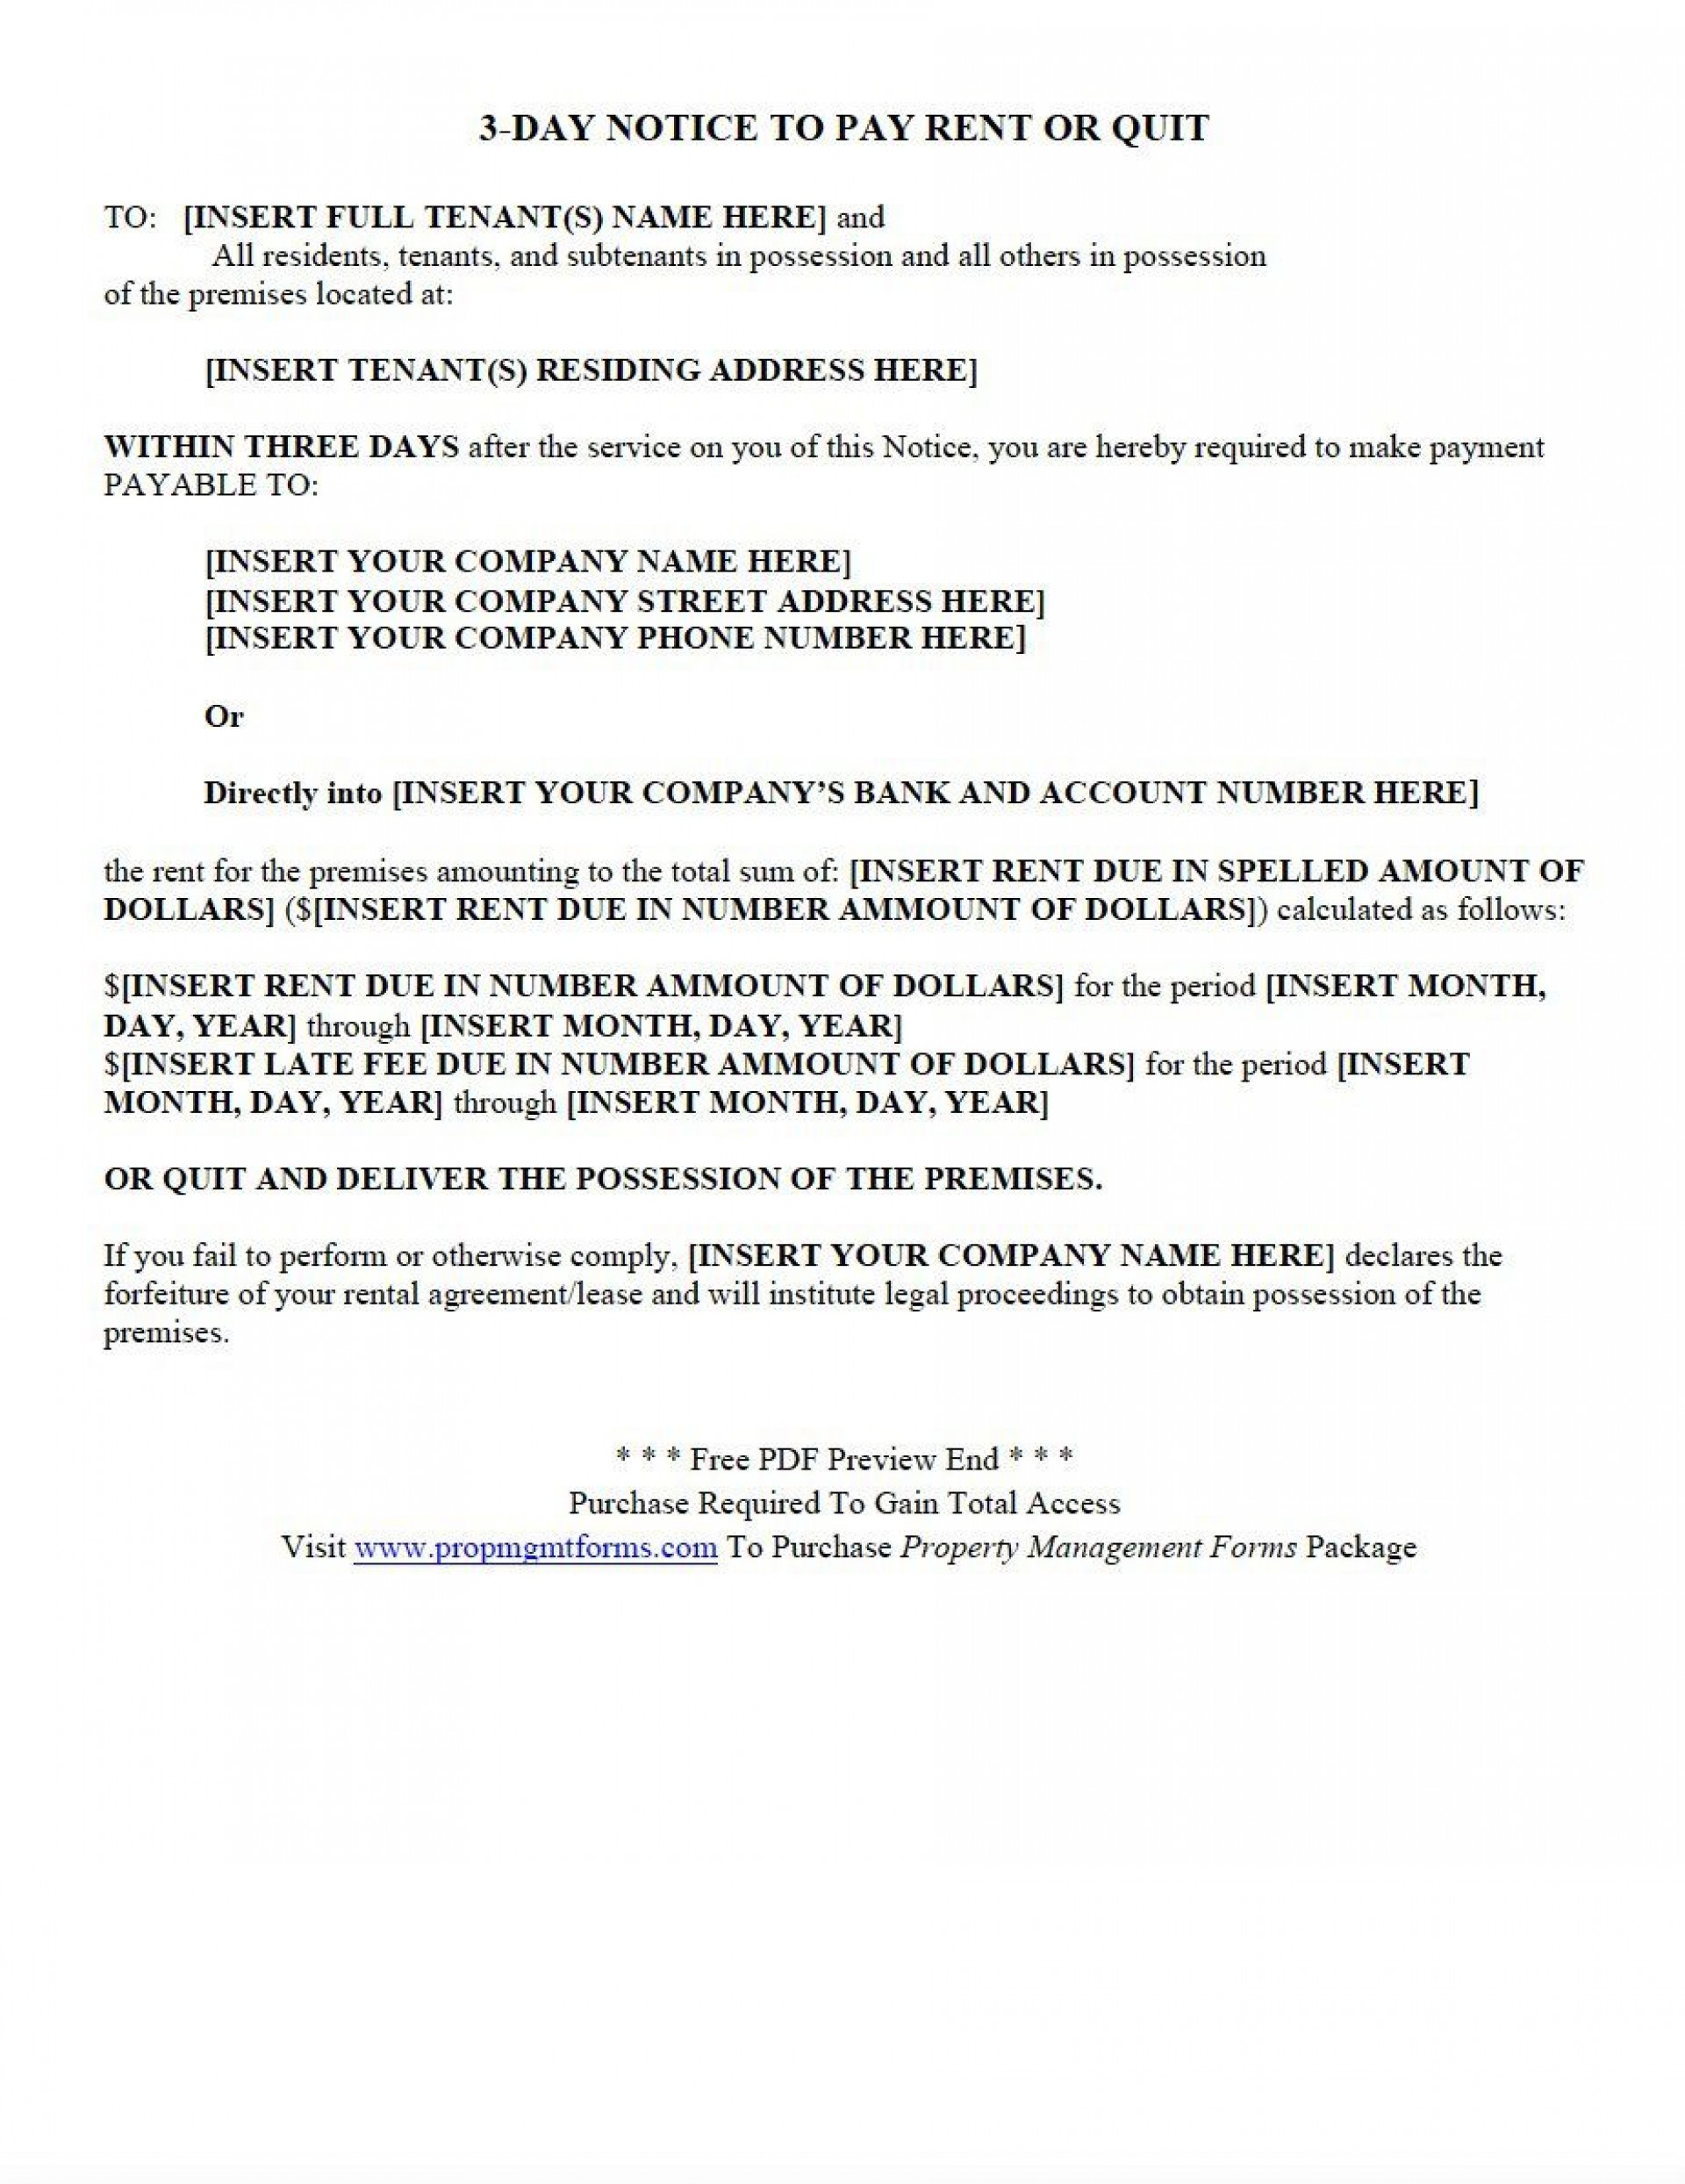 005 Striking Property Management Agreement Template Pdf Example  Contract1920